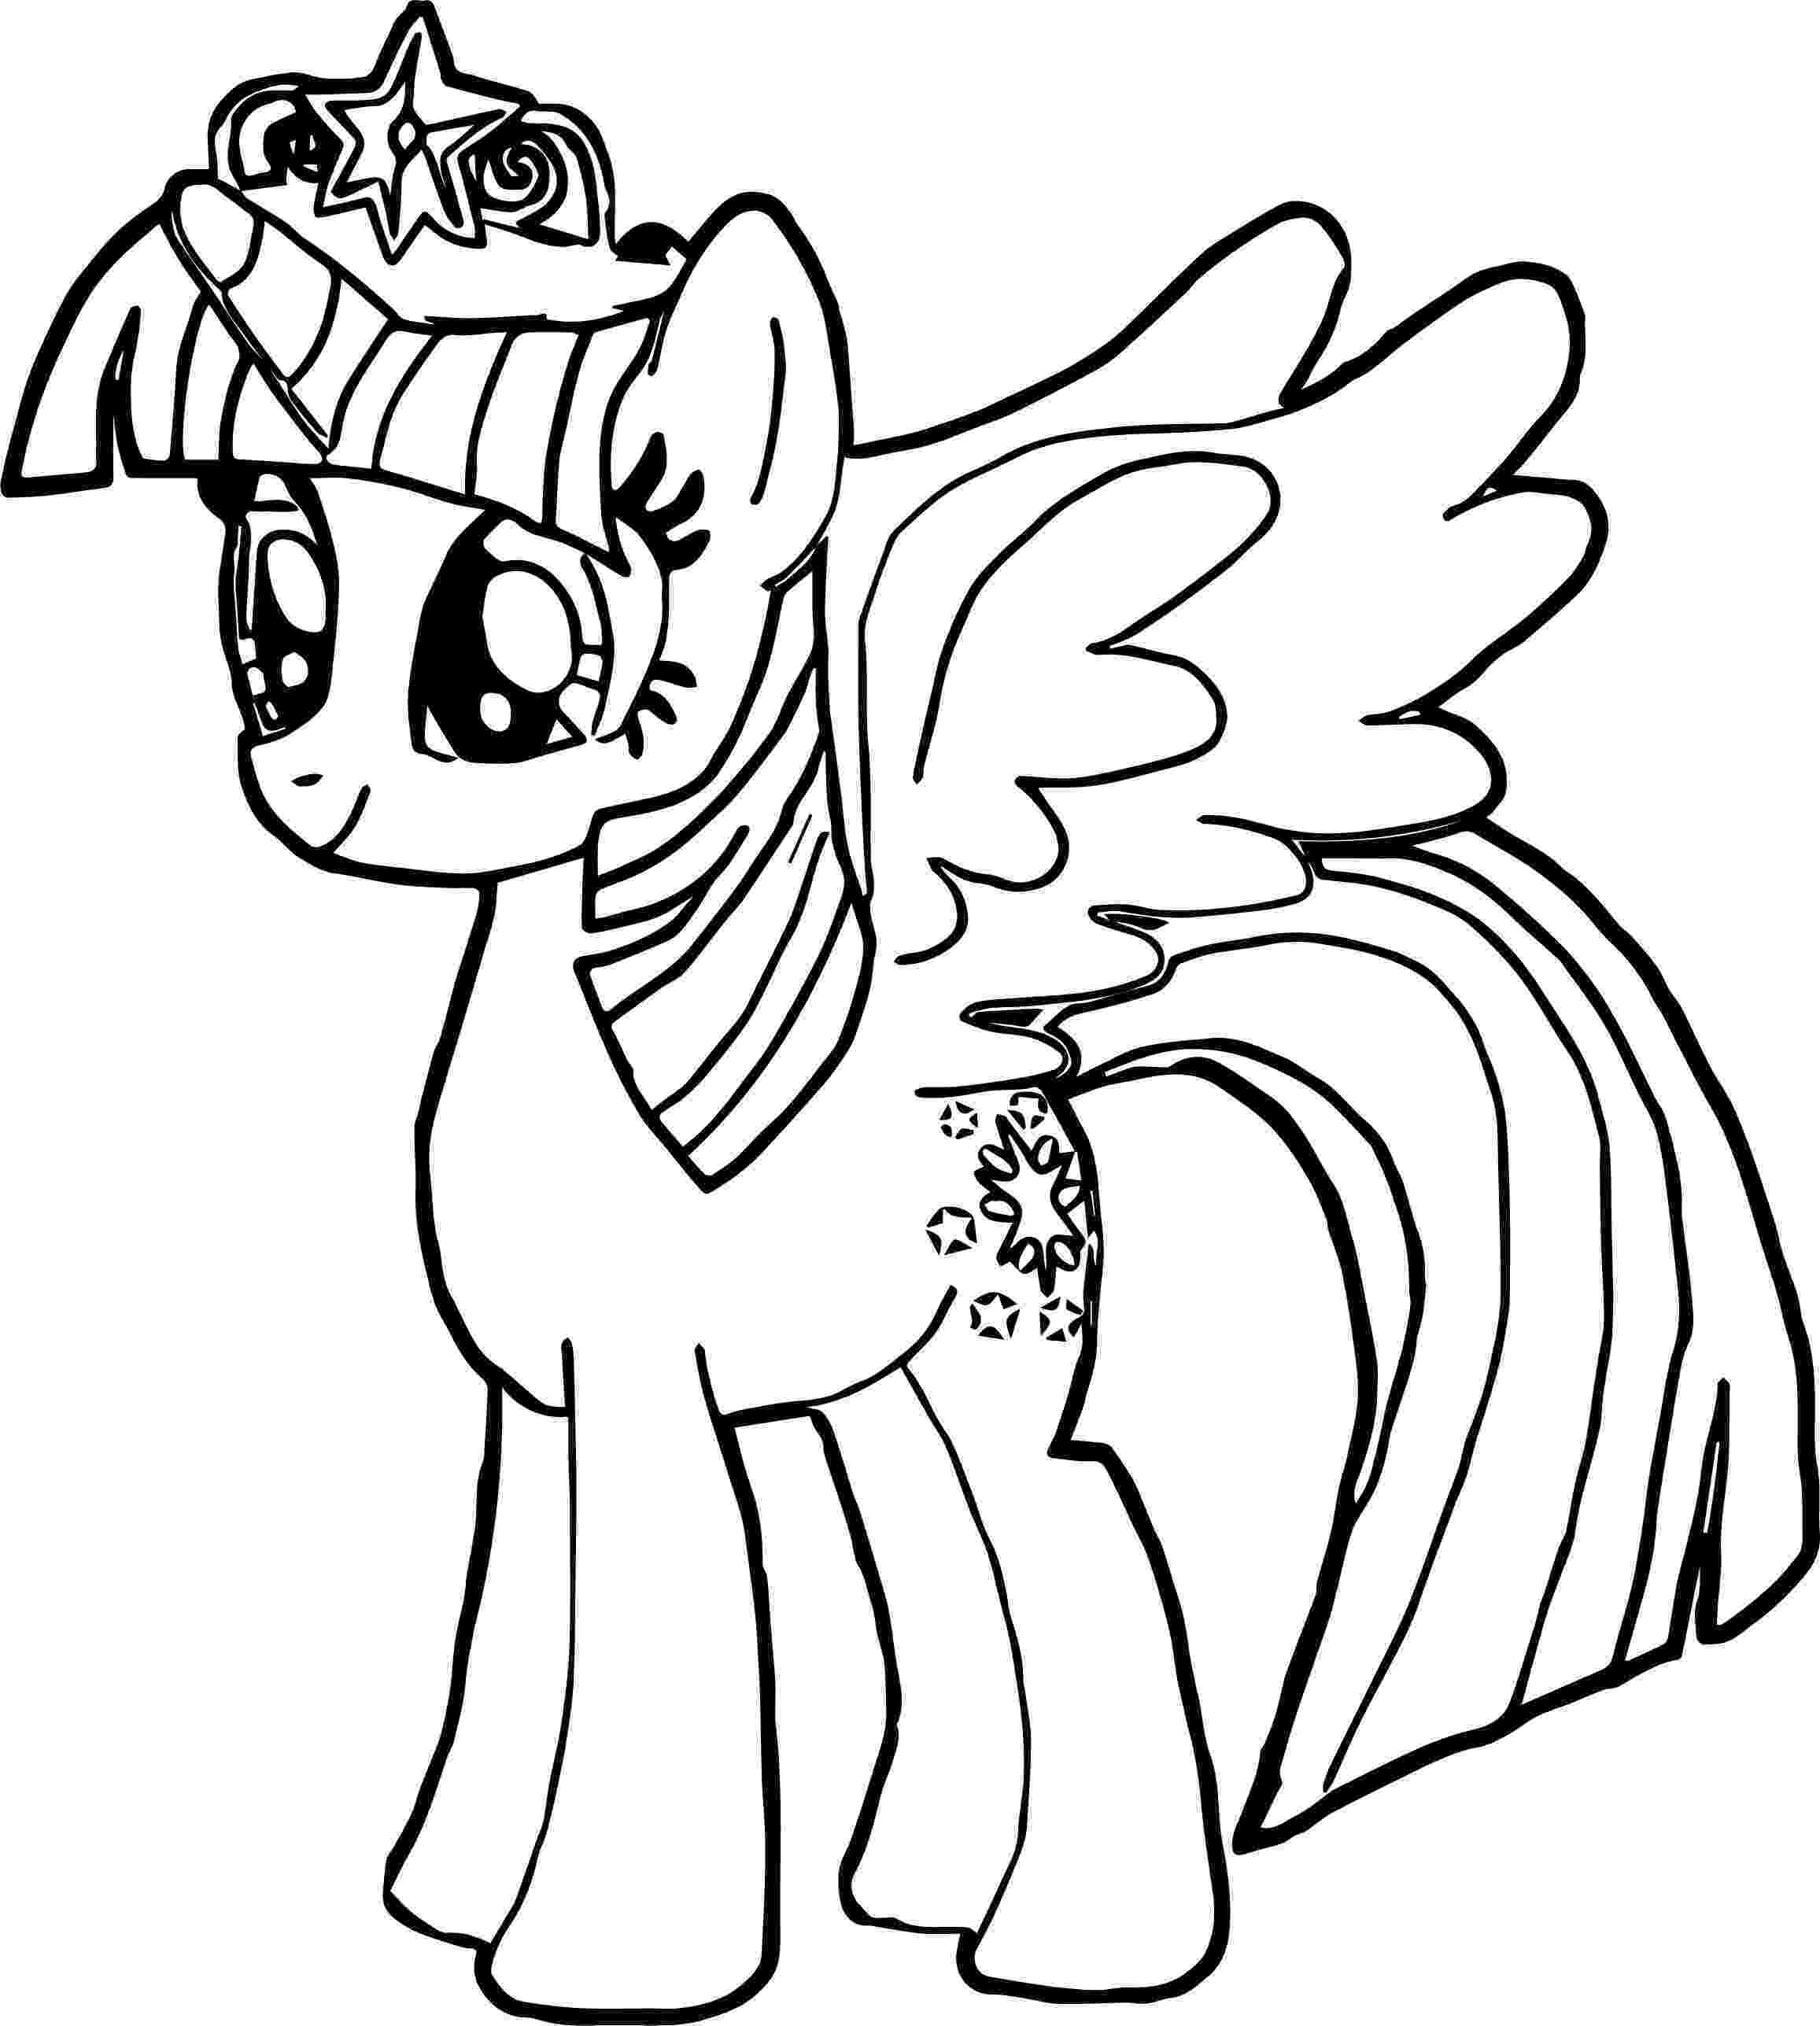 coloring pages twilight sparkle twilight sparkle coloring pages to download and print for free twilight coloring sparkle pages